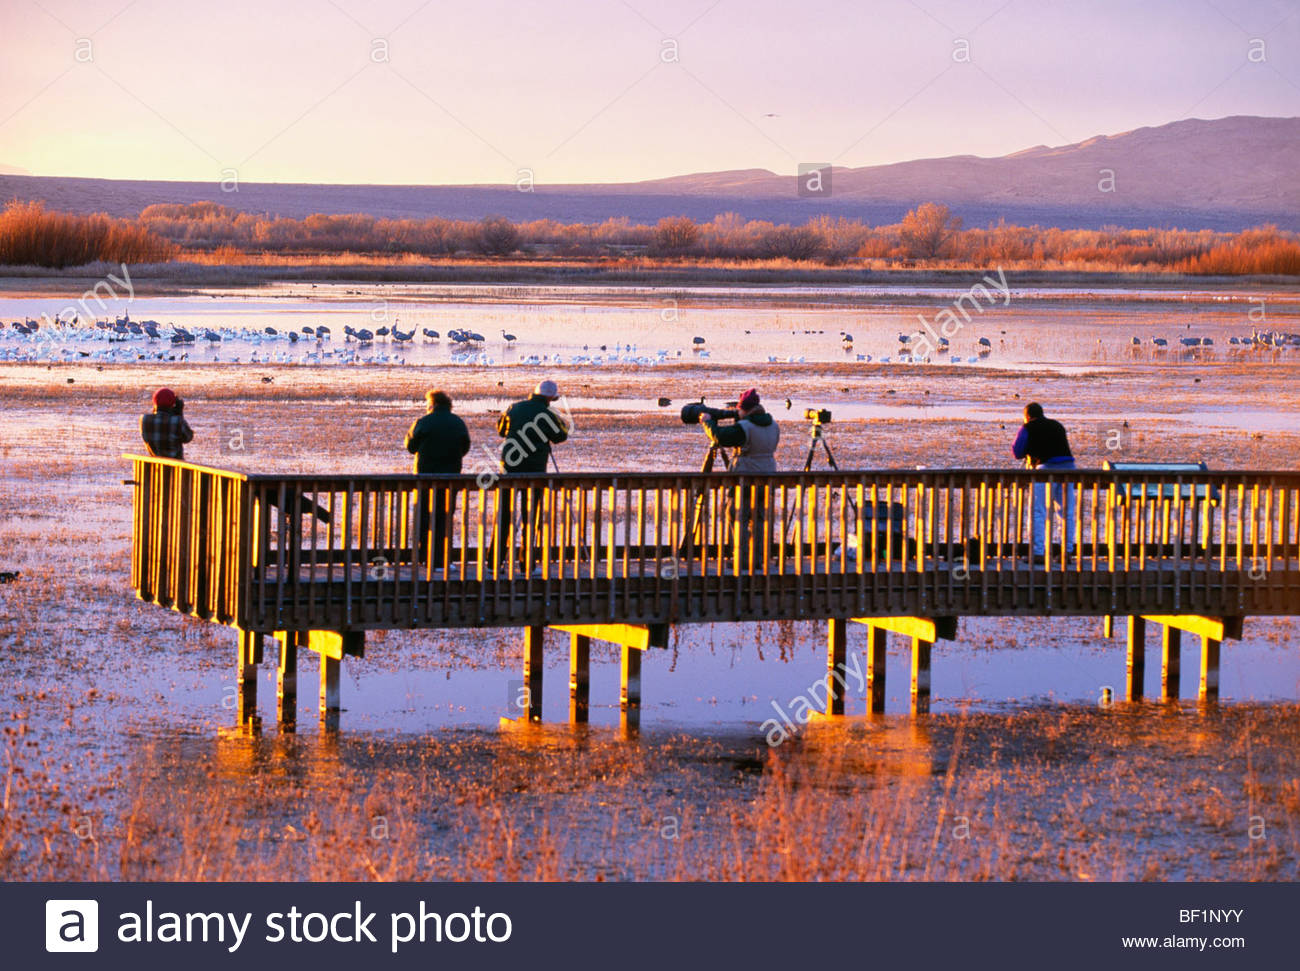 'Bird watchers' at sunrise with 'sandhill cranes' and 'snow geese'. [Bosque del Apache National - Stock Image